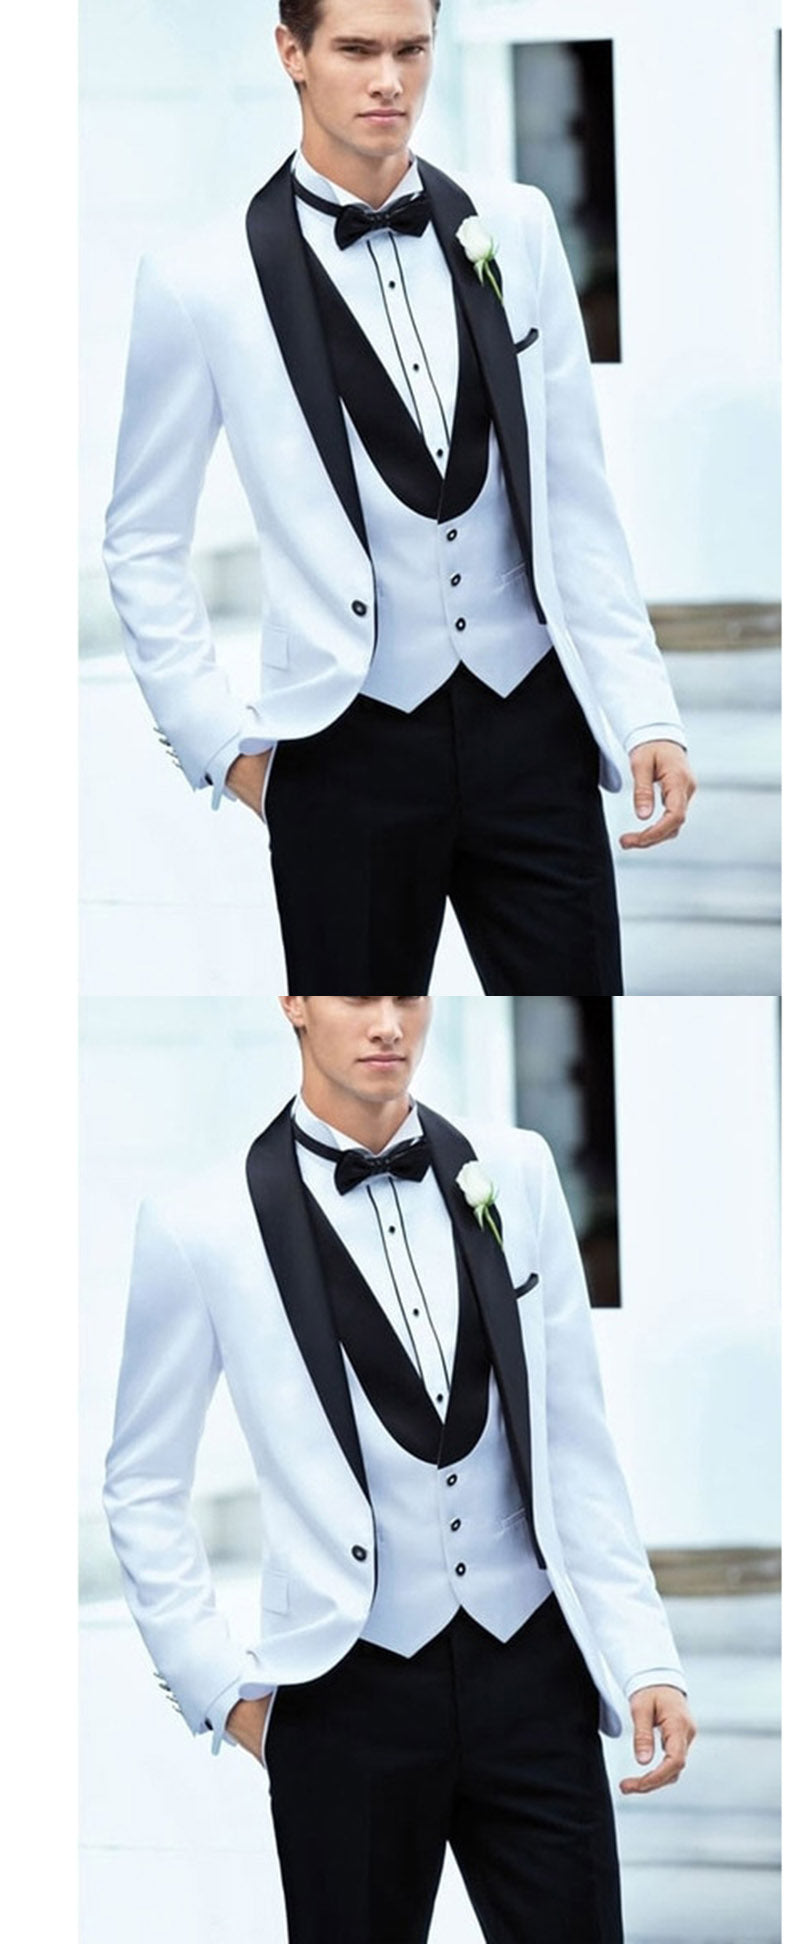 White And Black Shawl Groom Suit For Wedding Men Formal Tuxedos 3 Piec Classbydress,Casual Outdoor Wedding Dress Ideas